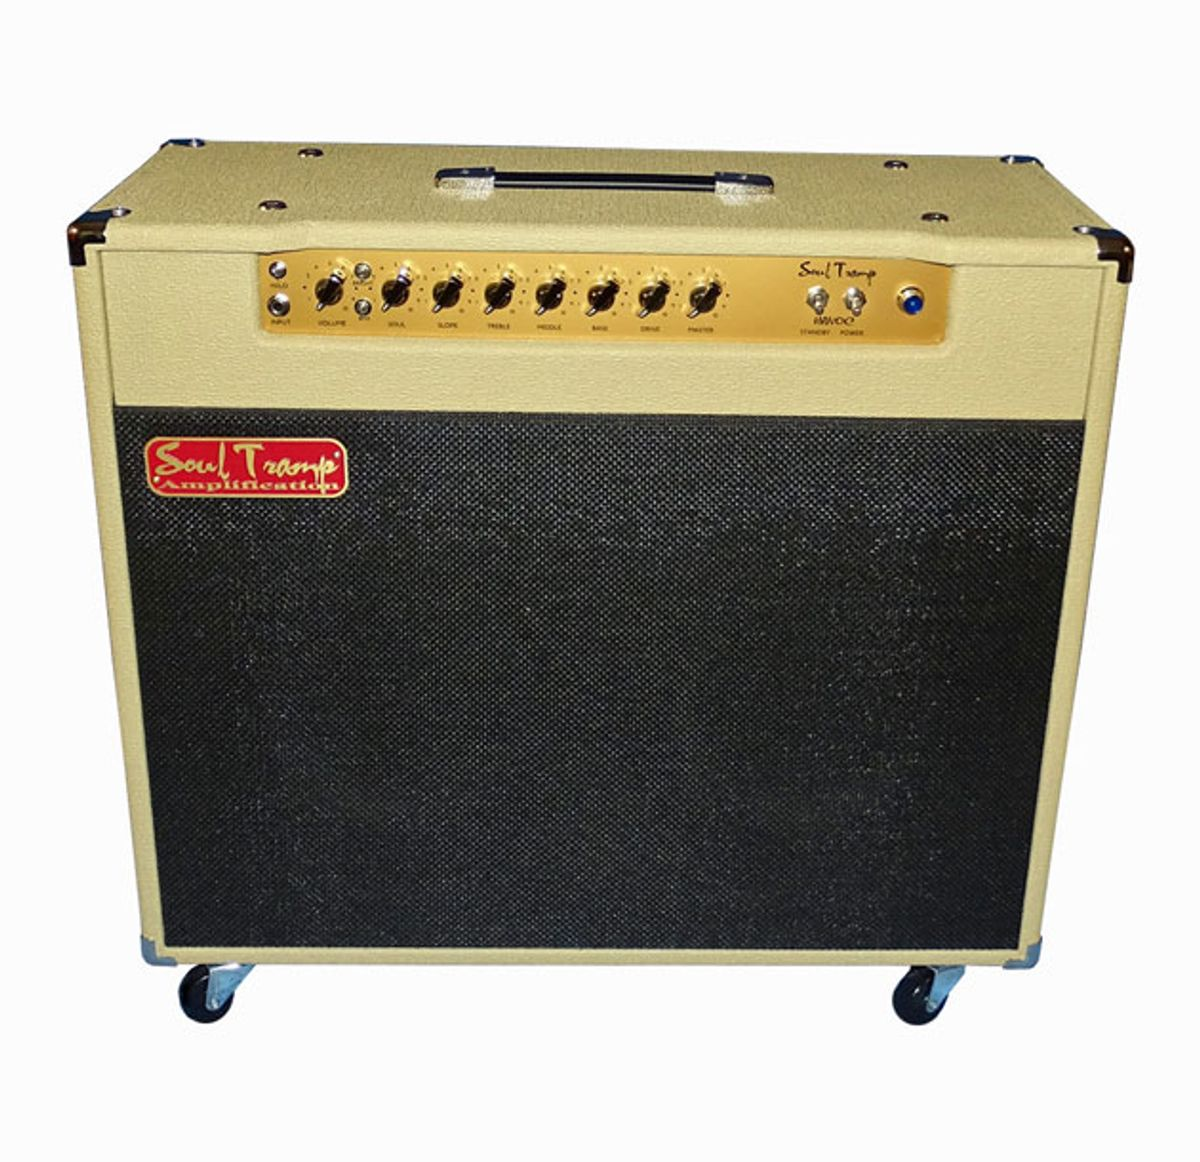 Soul Tramp Amplification Unleashes the Havoc